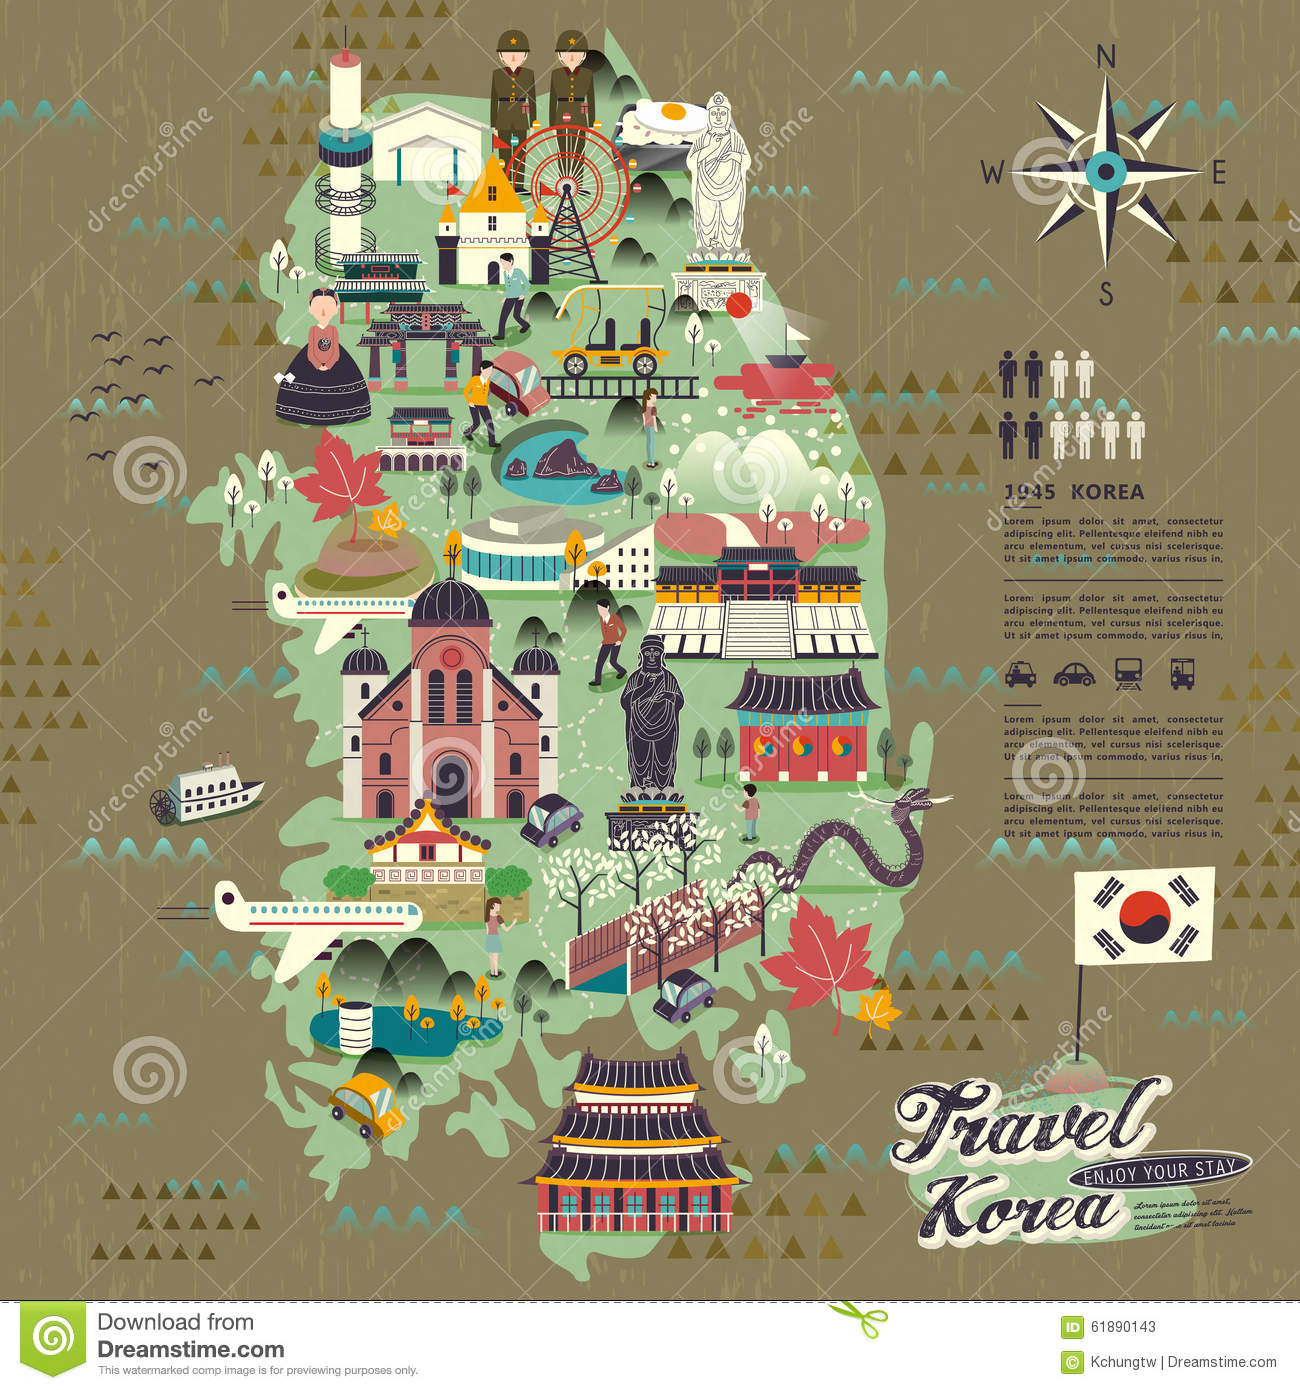 South Korea Travel Map Illustration 61890143 Megapixl